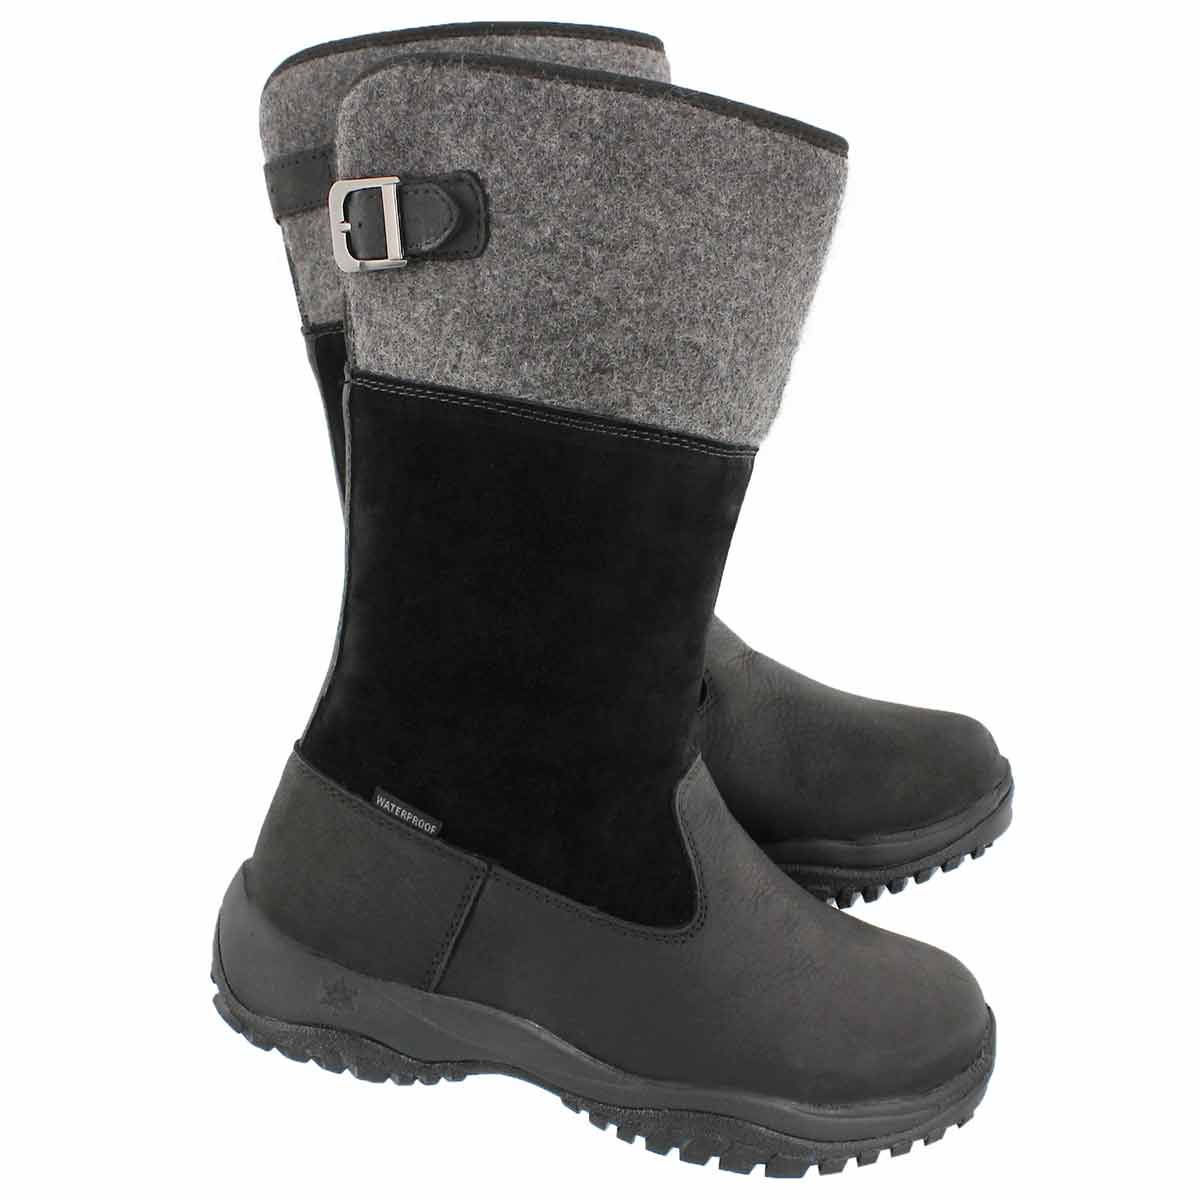 Lds Engleberg blk tall wtpf winter boot